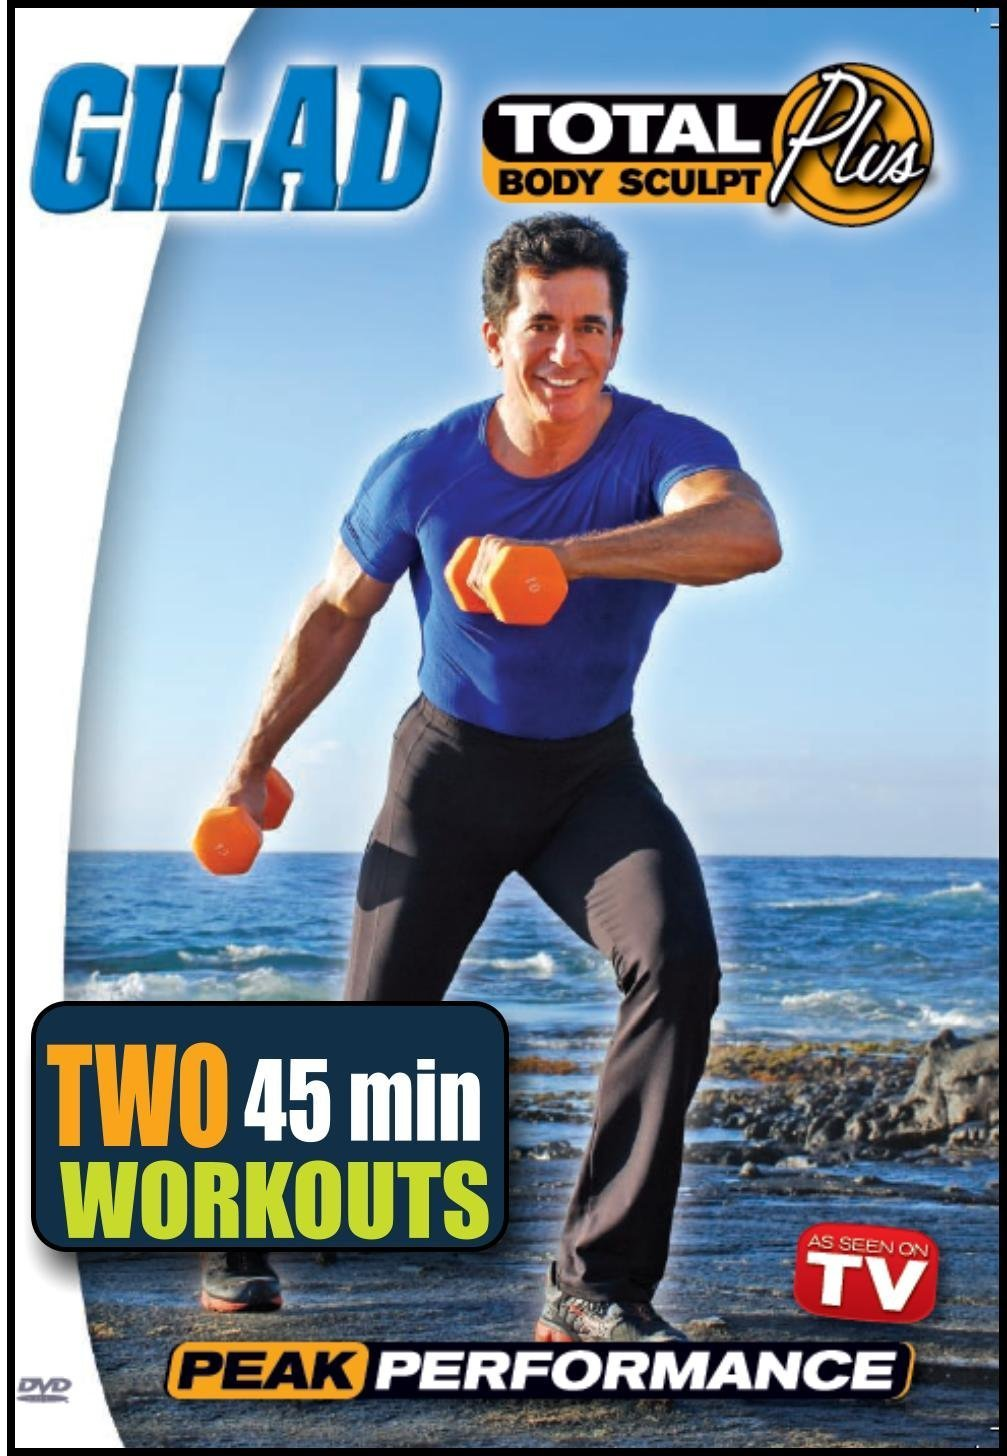 Gilad online shopping Total Body Sculpt Peak Performance Max 46% OFF with PLUS: